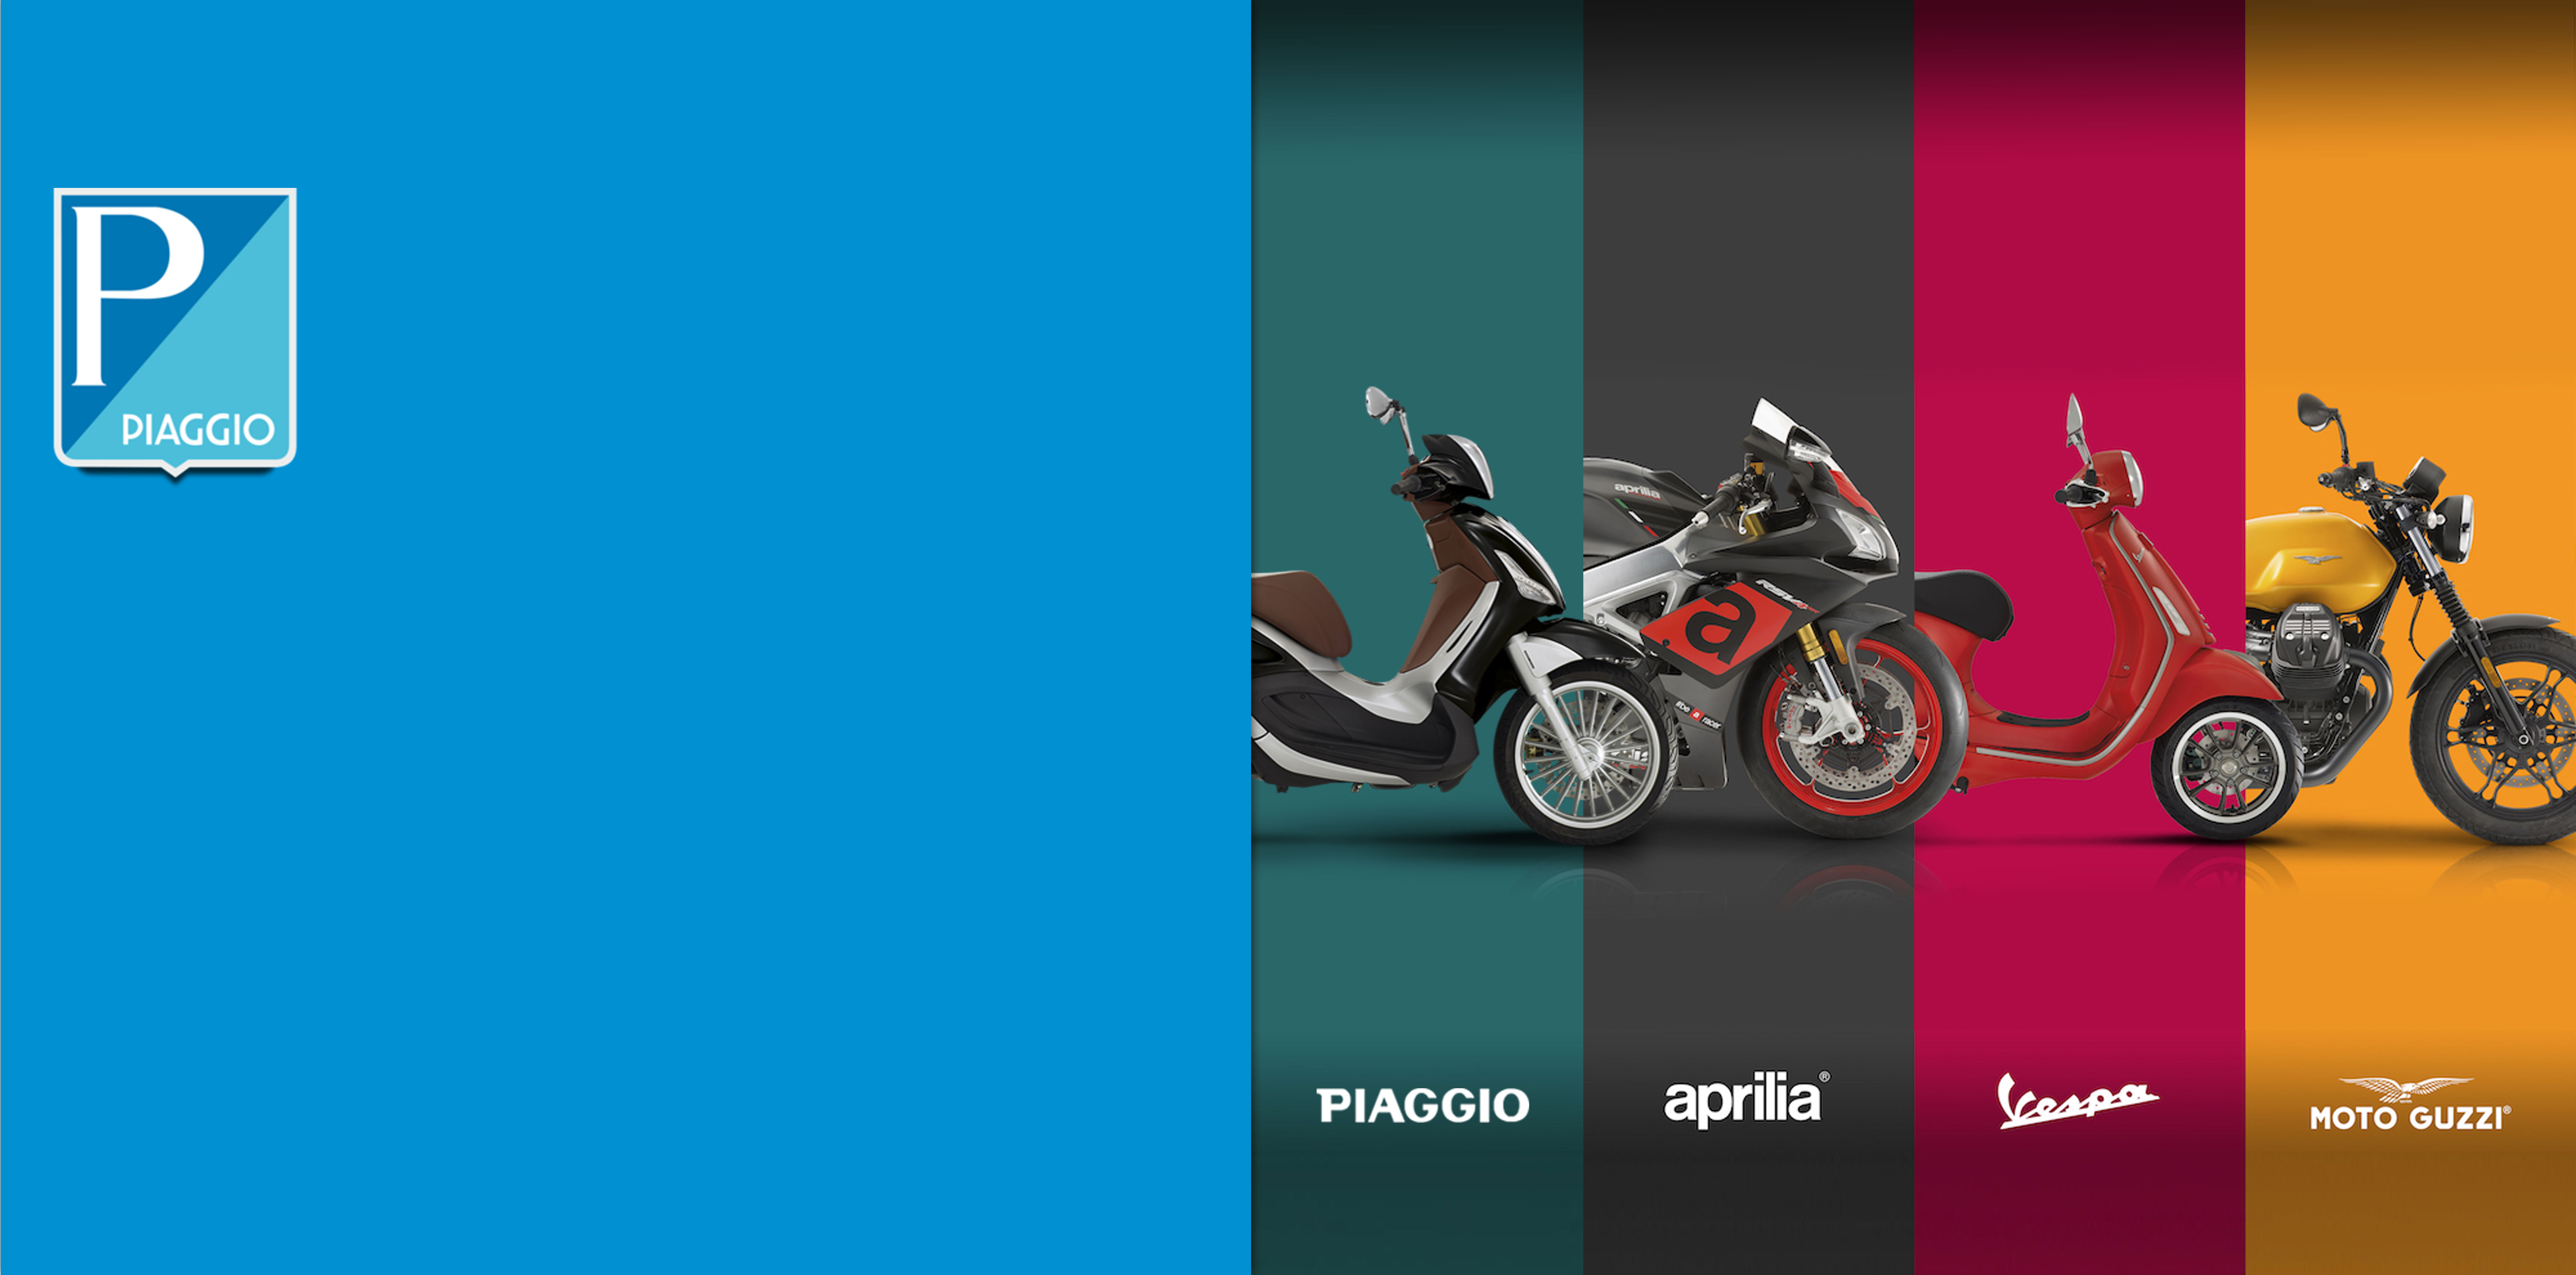 piaggio-group-motoplanet-slide-1